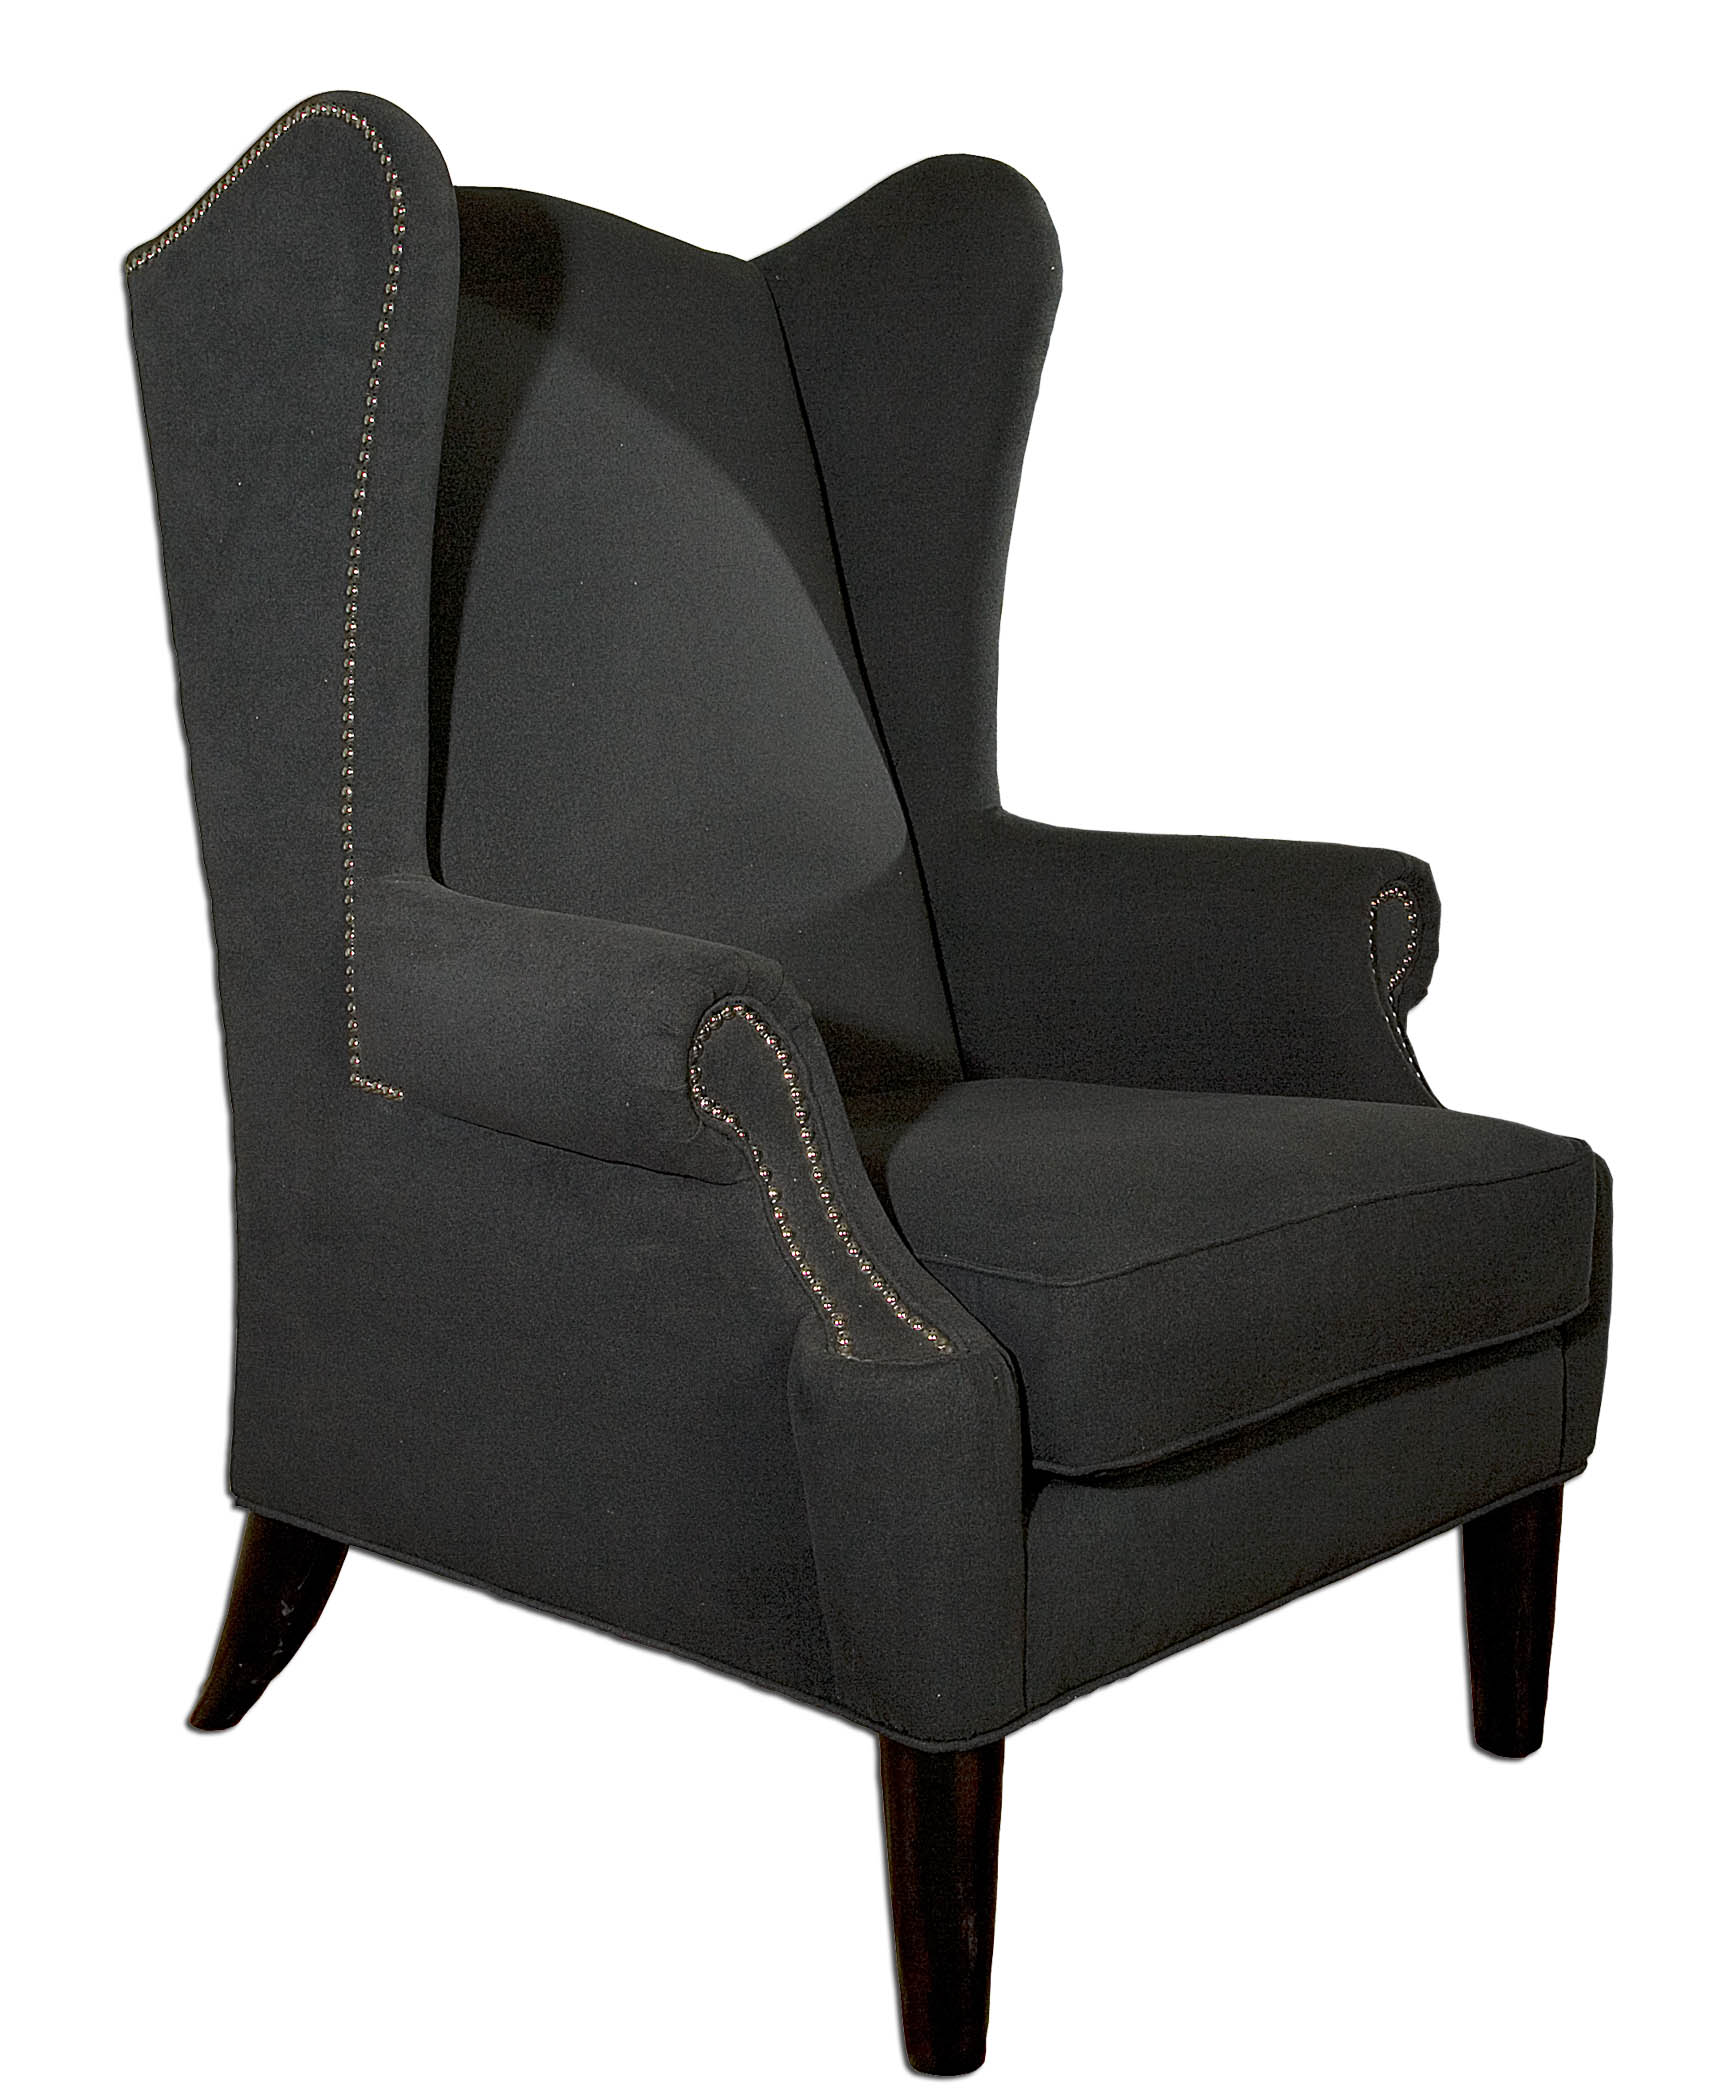 Wing chair arm chair tall living room chair 50 tall for Comfortable wingback chair